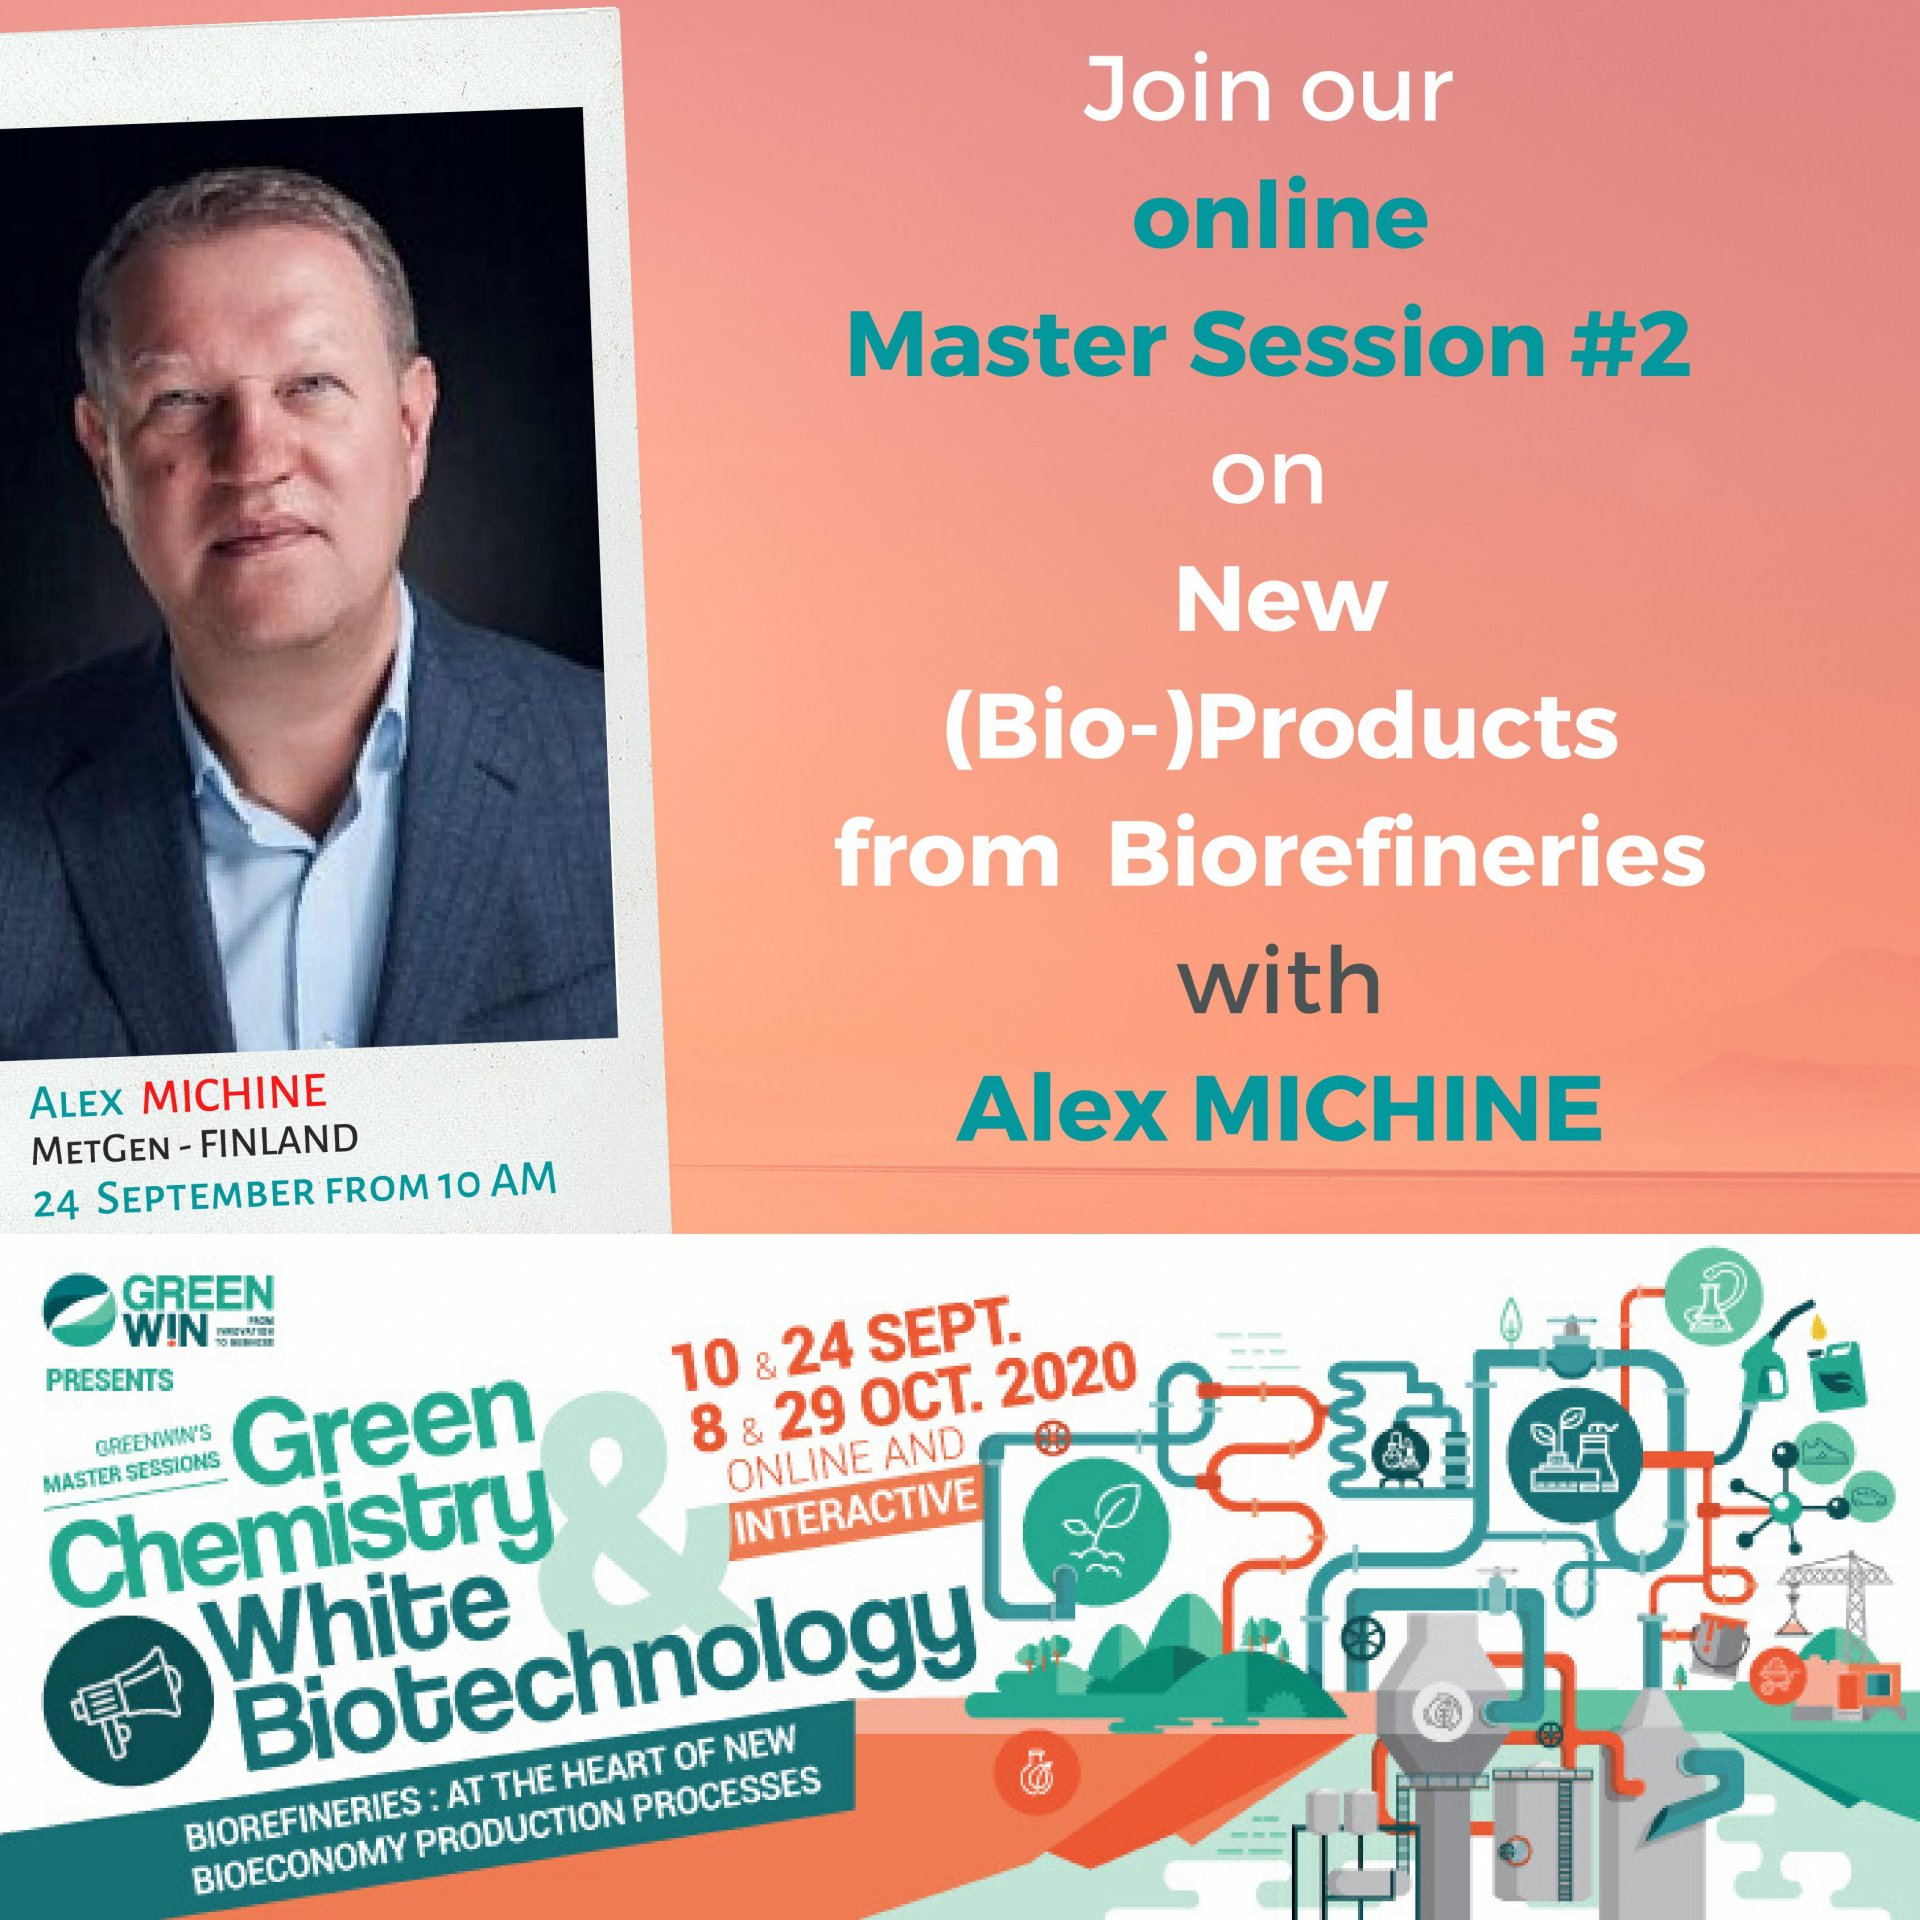 Meet Alex MICHINE  from MetGen - Finland, on our online Master Session #2 on 24 September at 10 AM